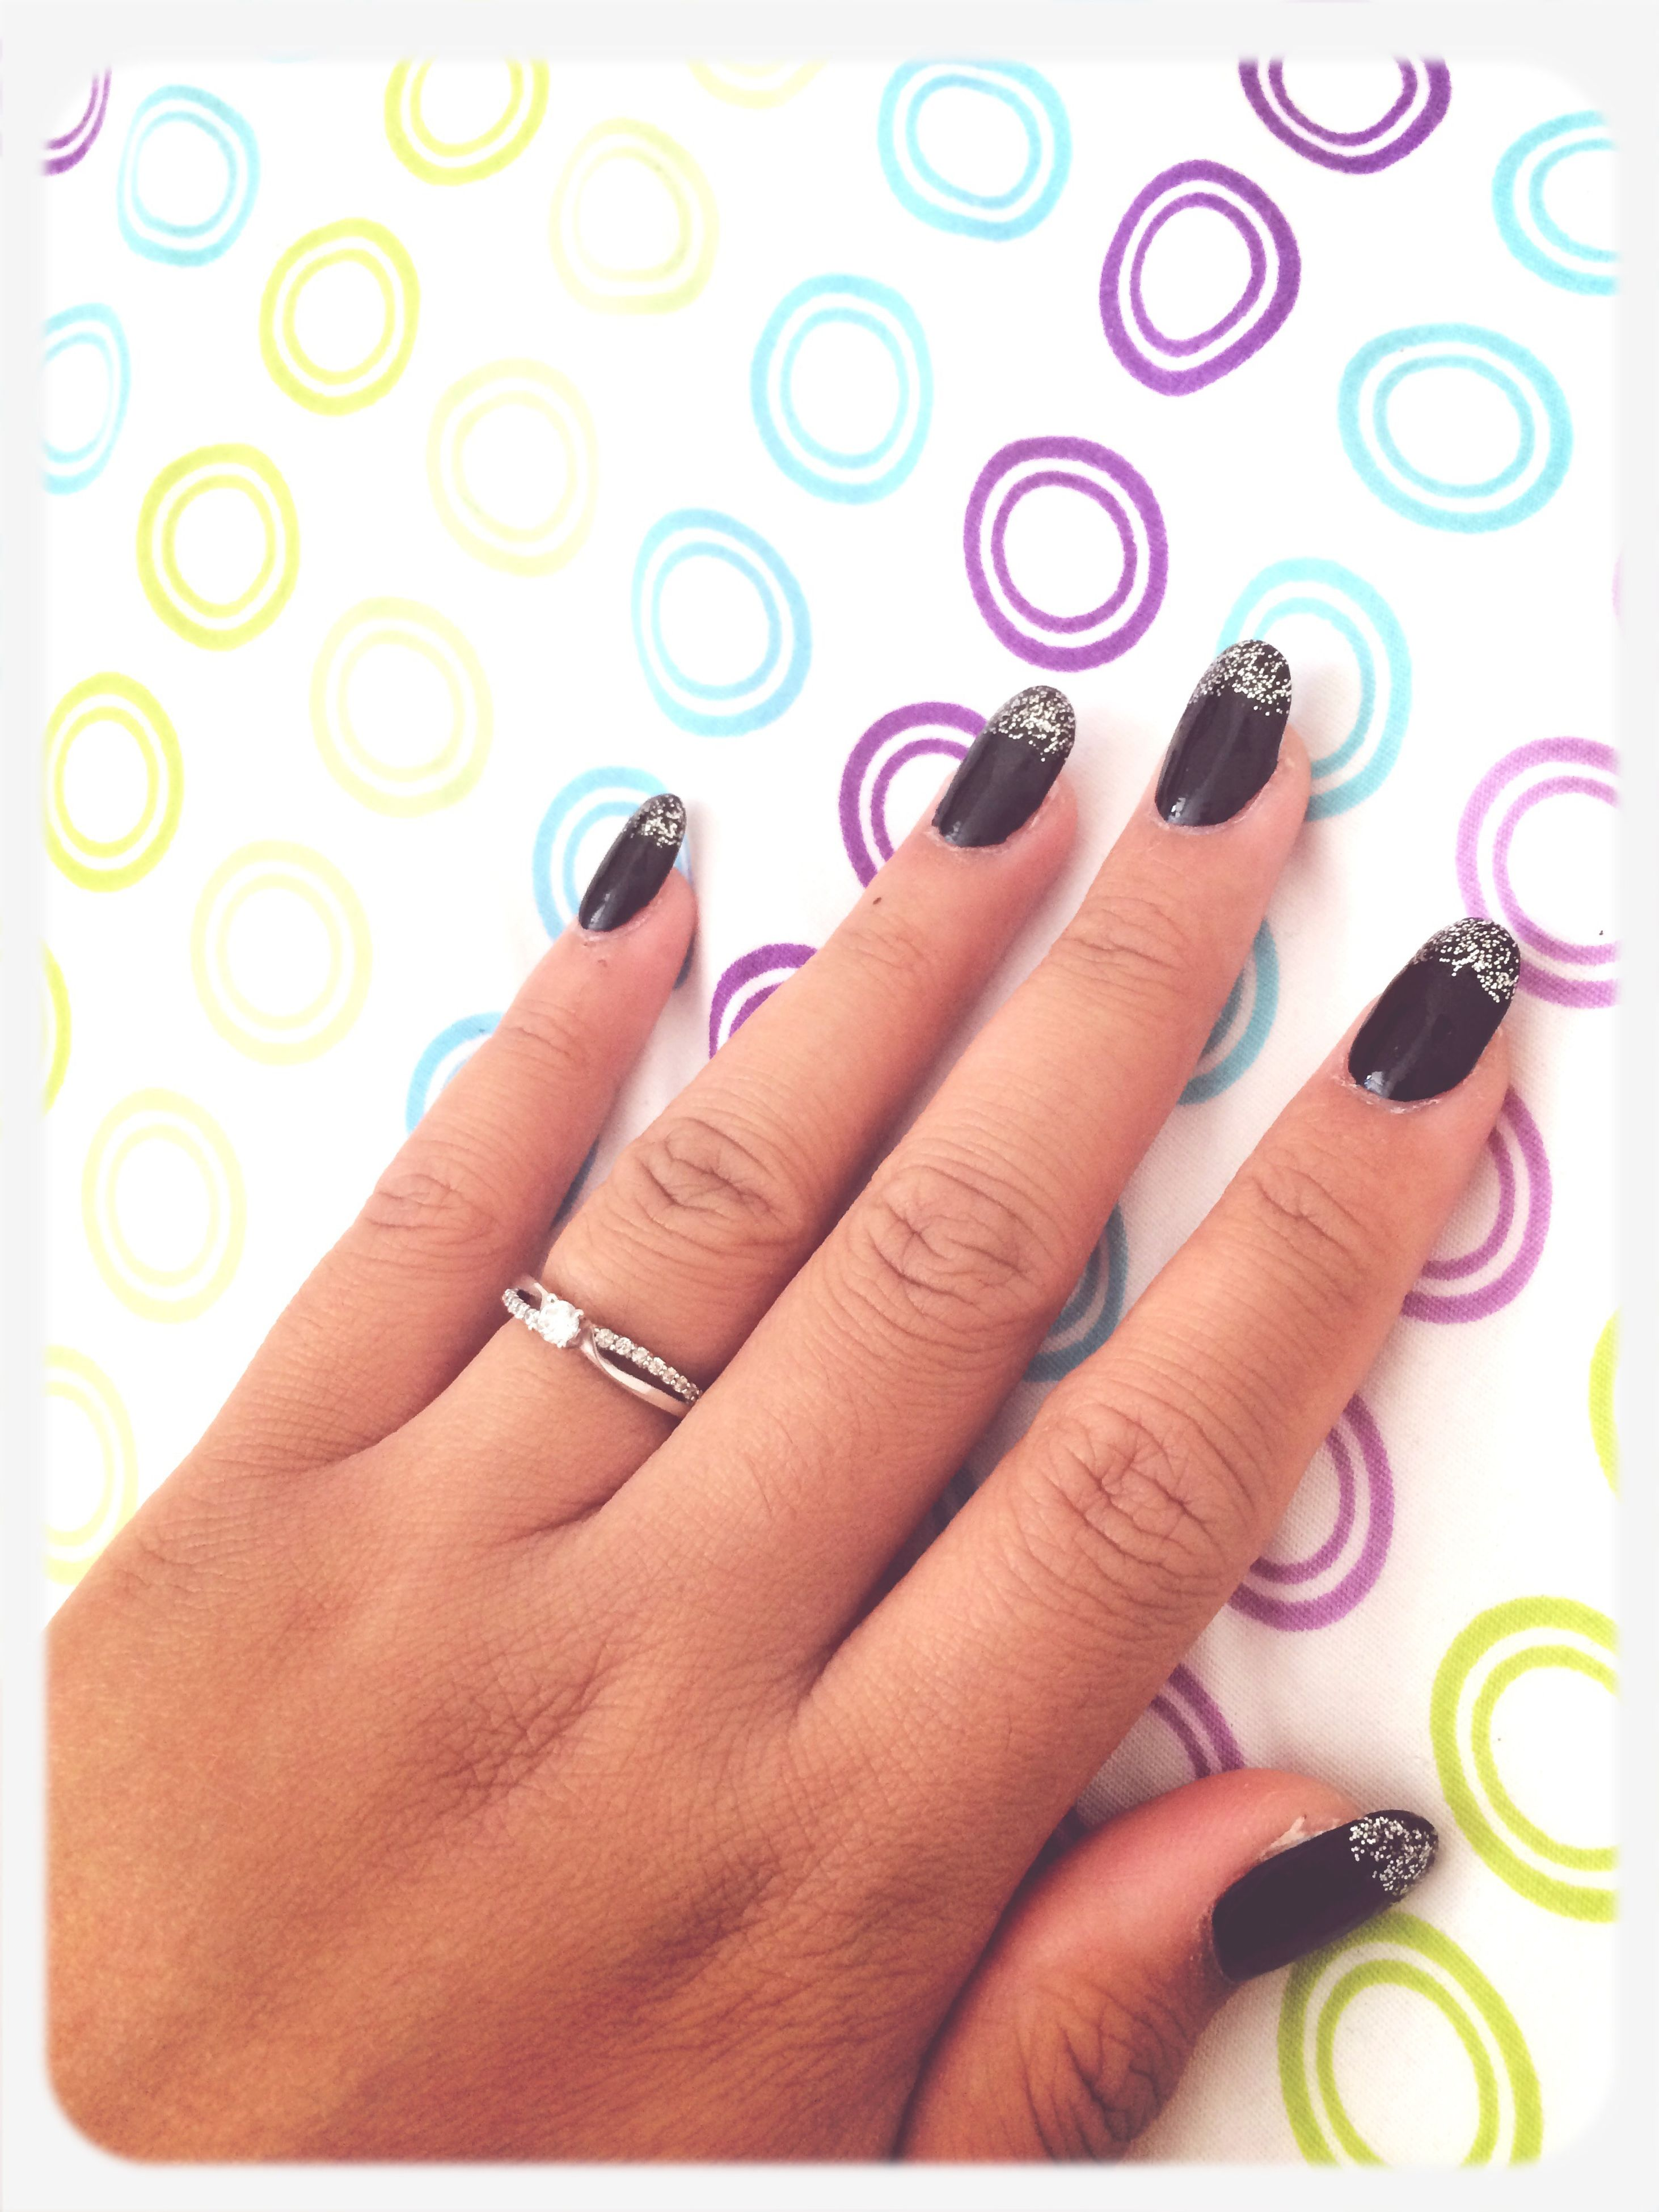 person, indoors, part of, holding, human finger, cropped, close-up, lifestyles, creativity, ring, leisure activity, high angle view, nail polish, art and craft, fashion, personal perspective